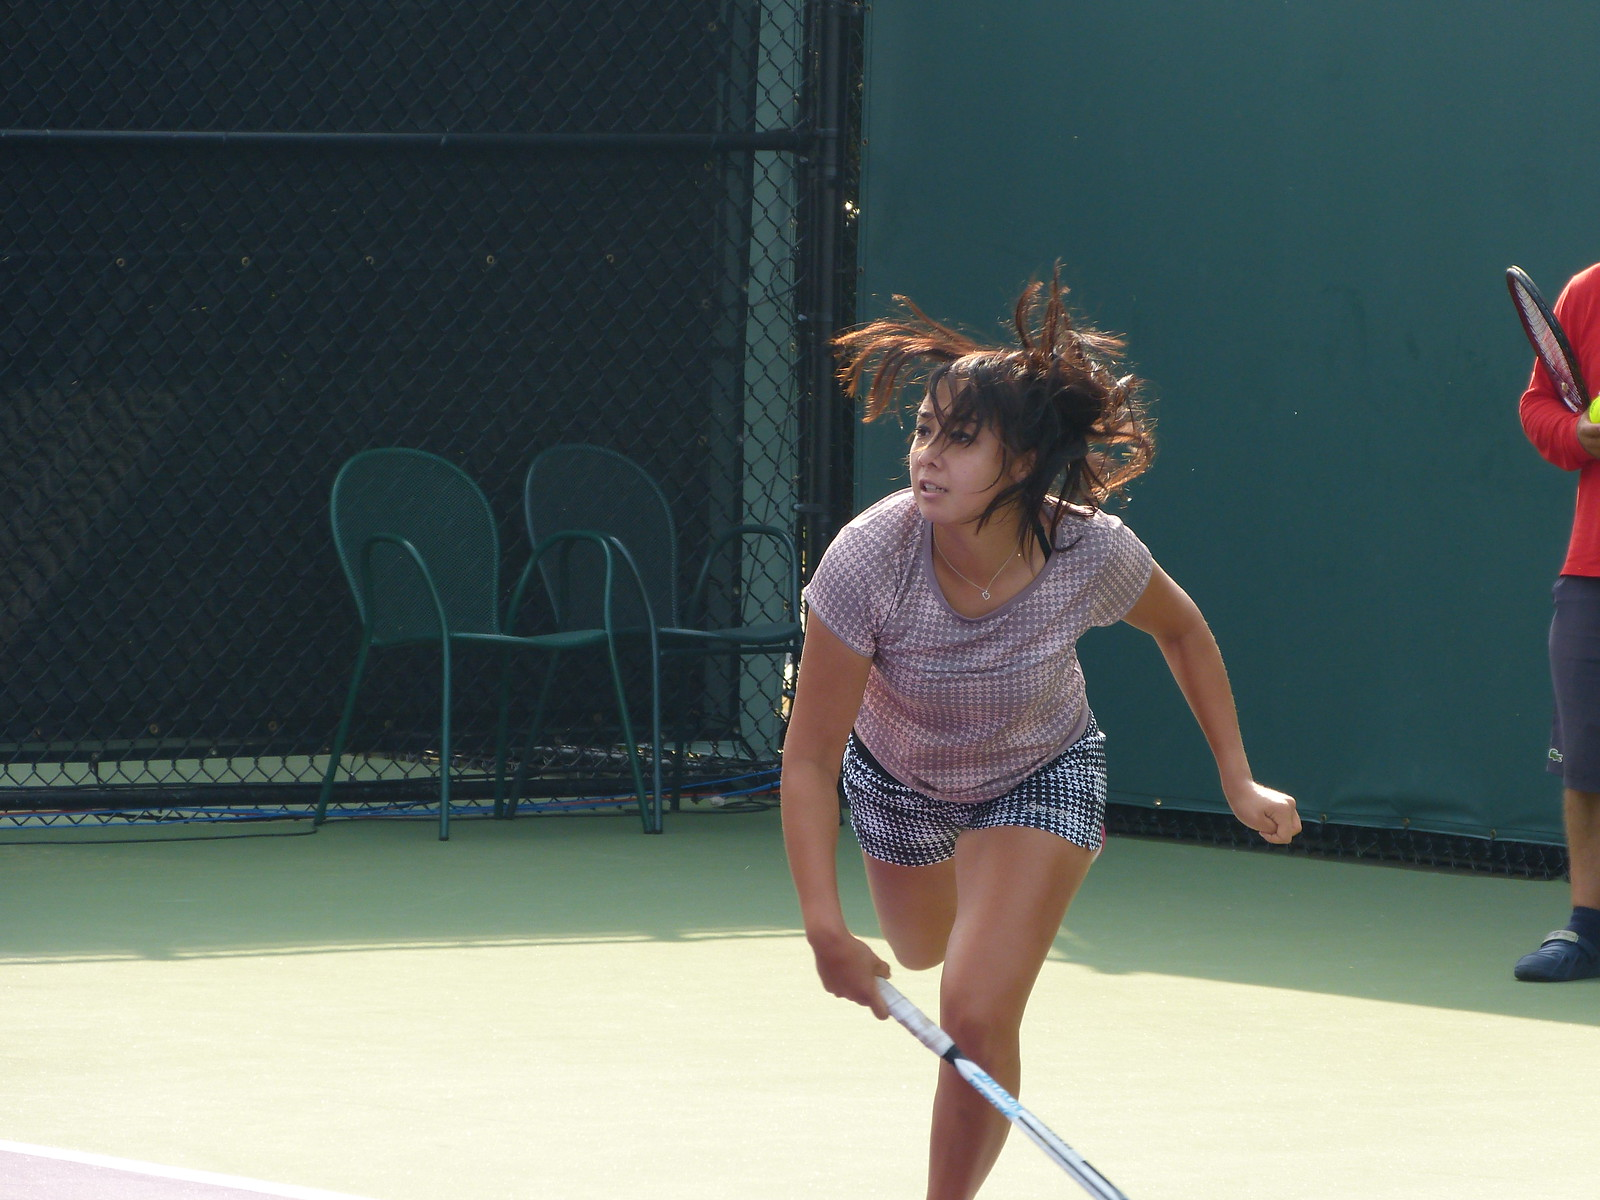 Zarina Diyas 2015 Itau Miami Open March 27